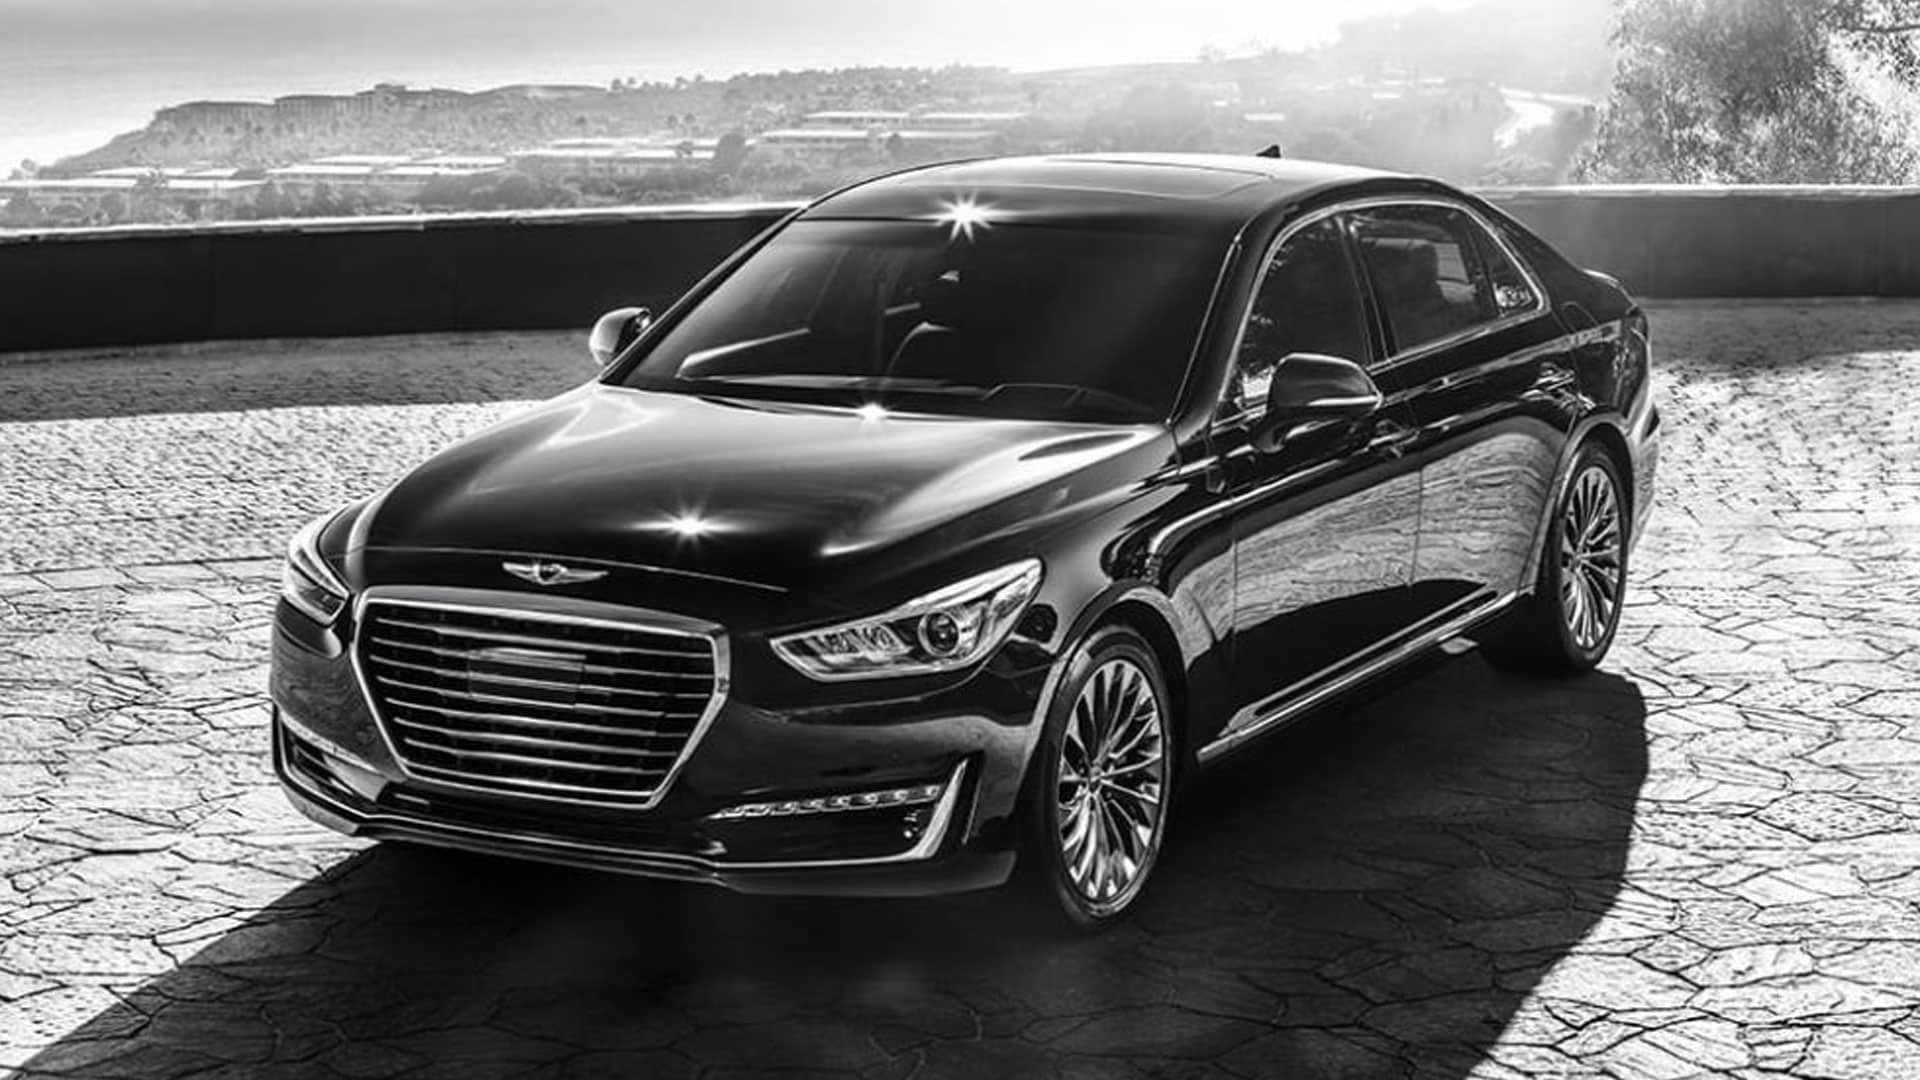 2019 Genesis G90 vs 2019 Lincoln Continental: Performance Features